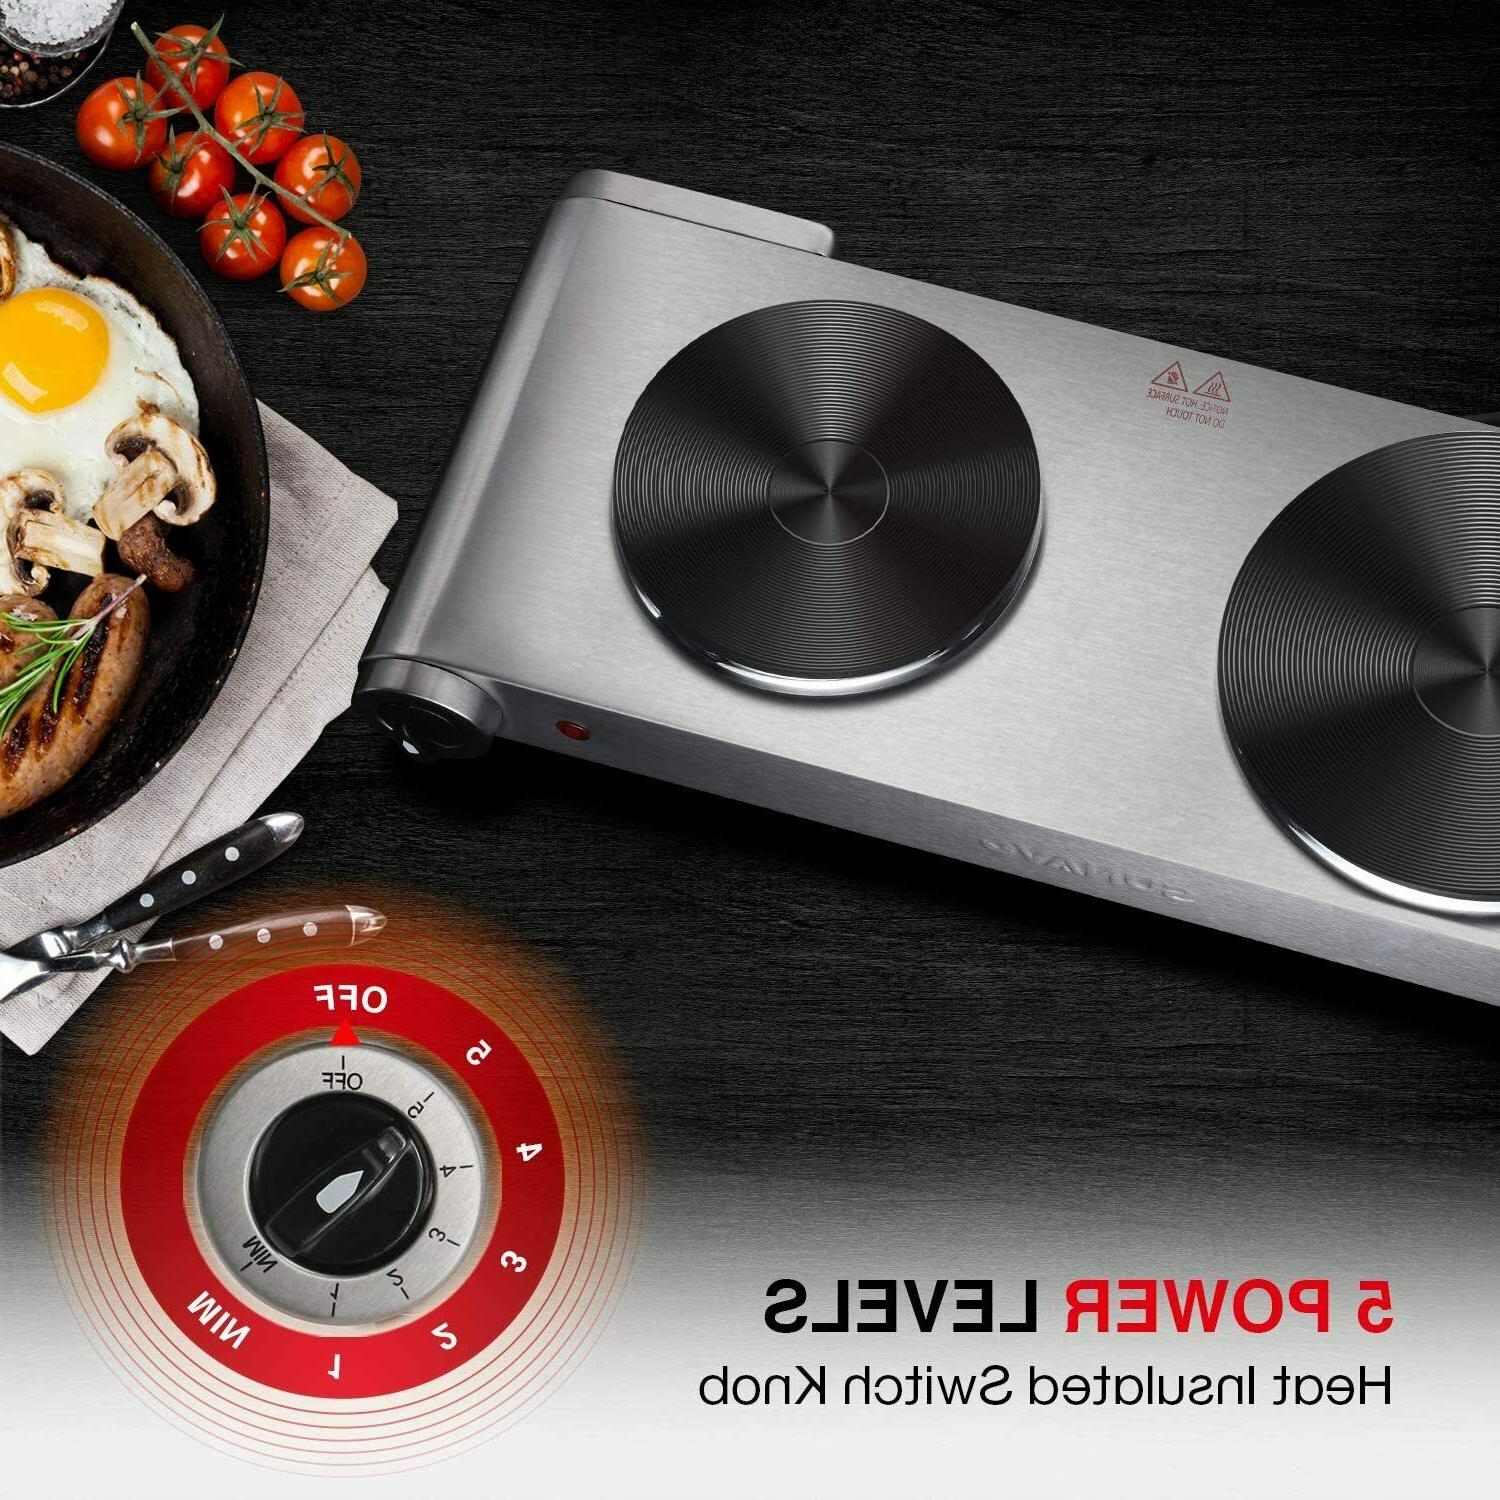 Hot Plates for Portable Double 1800W 5 Power Cast